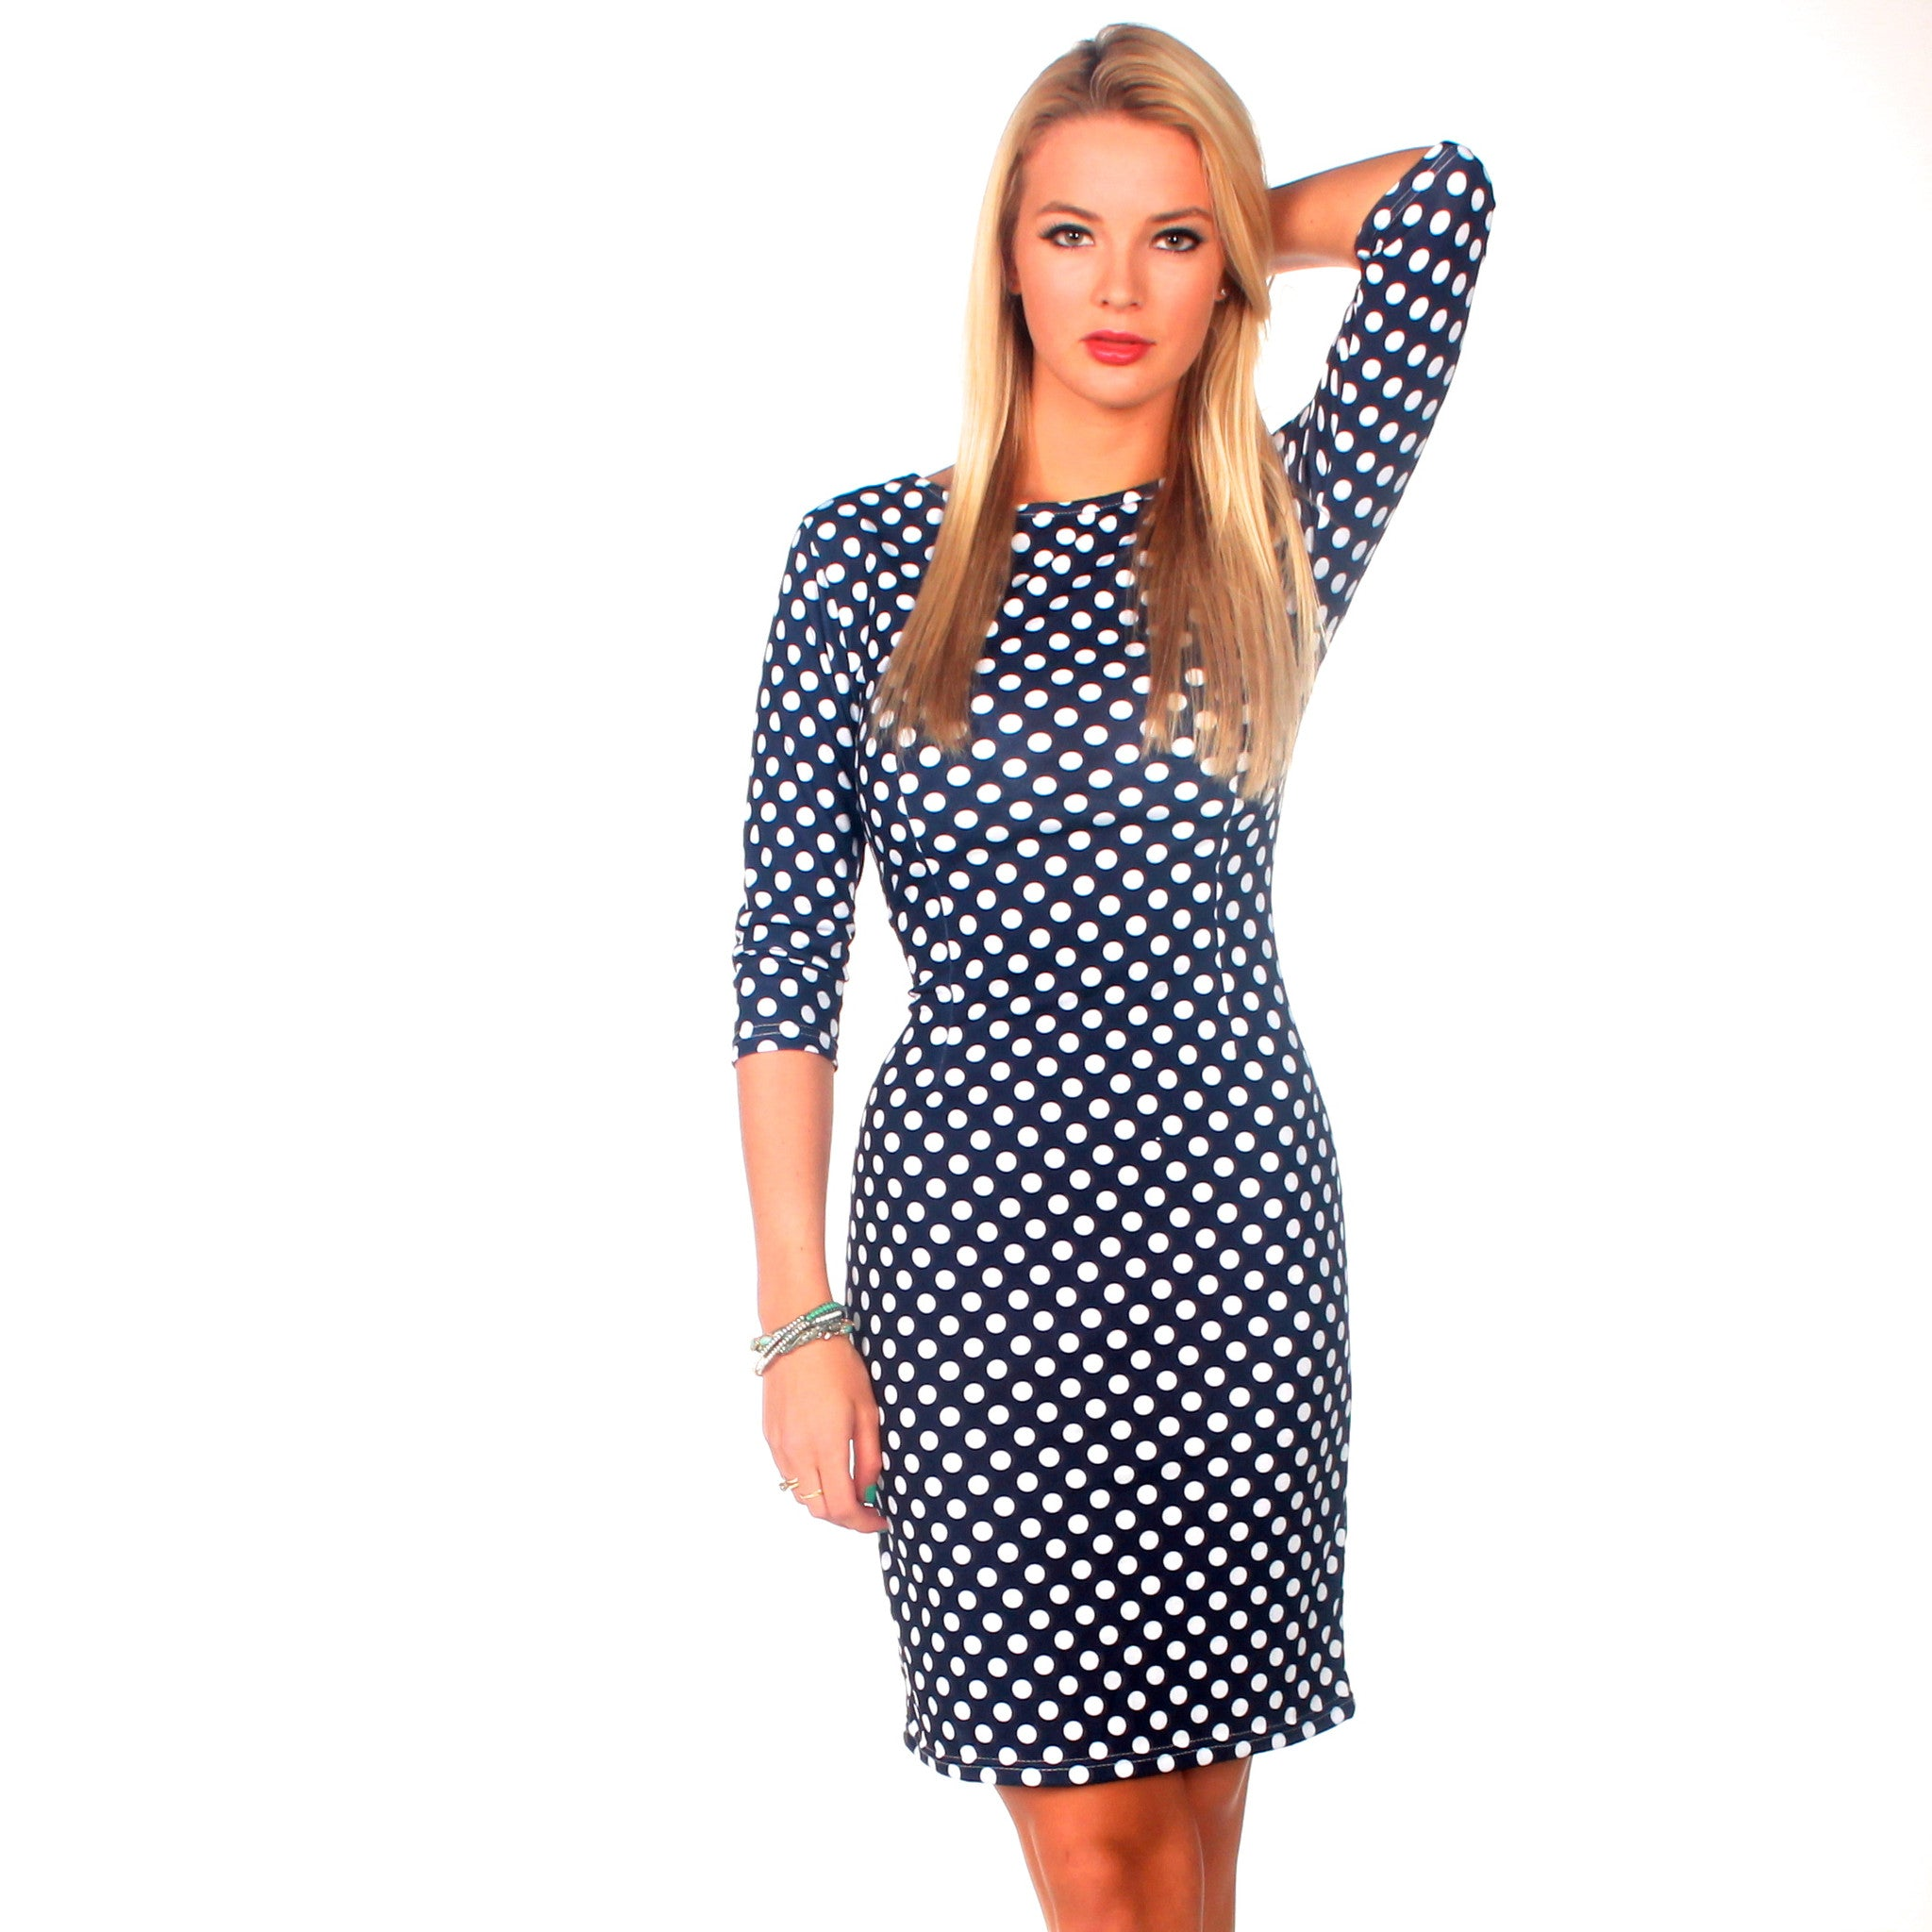 Blue Dress With White Polka Dots 5w32Y7pM